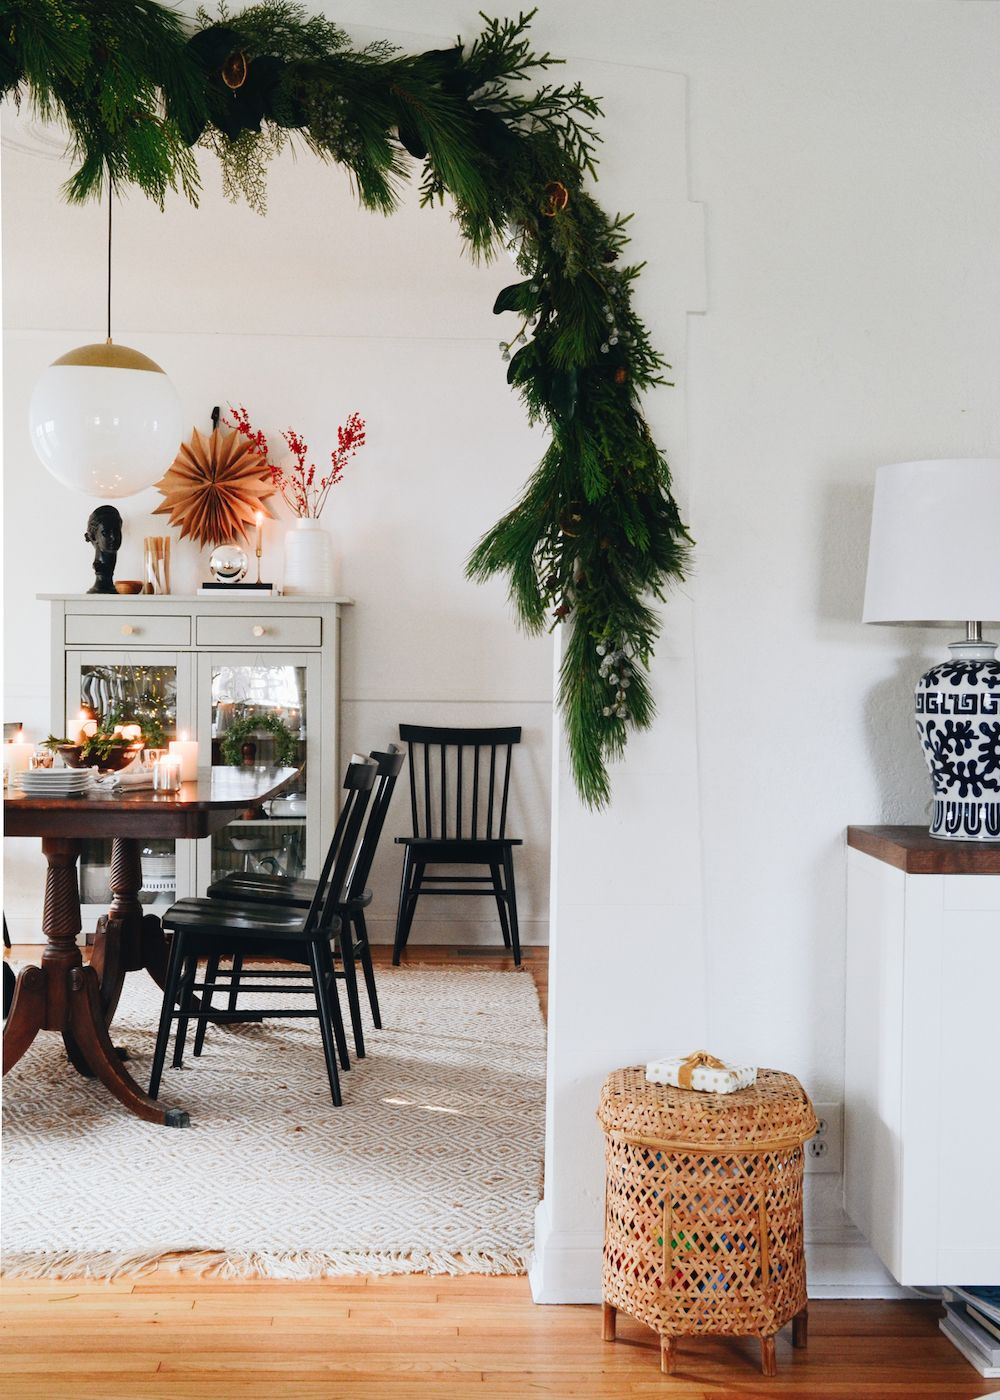 This NordicInspired Holiday Decor Will Make Your Eyes